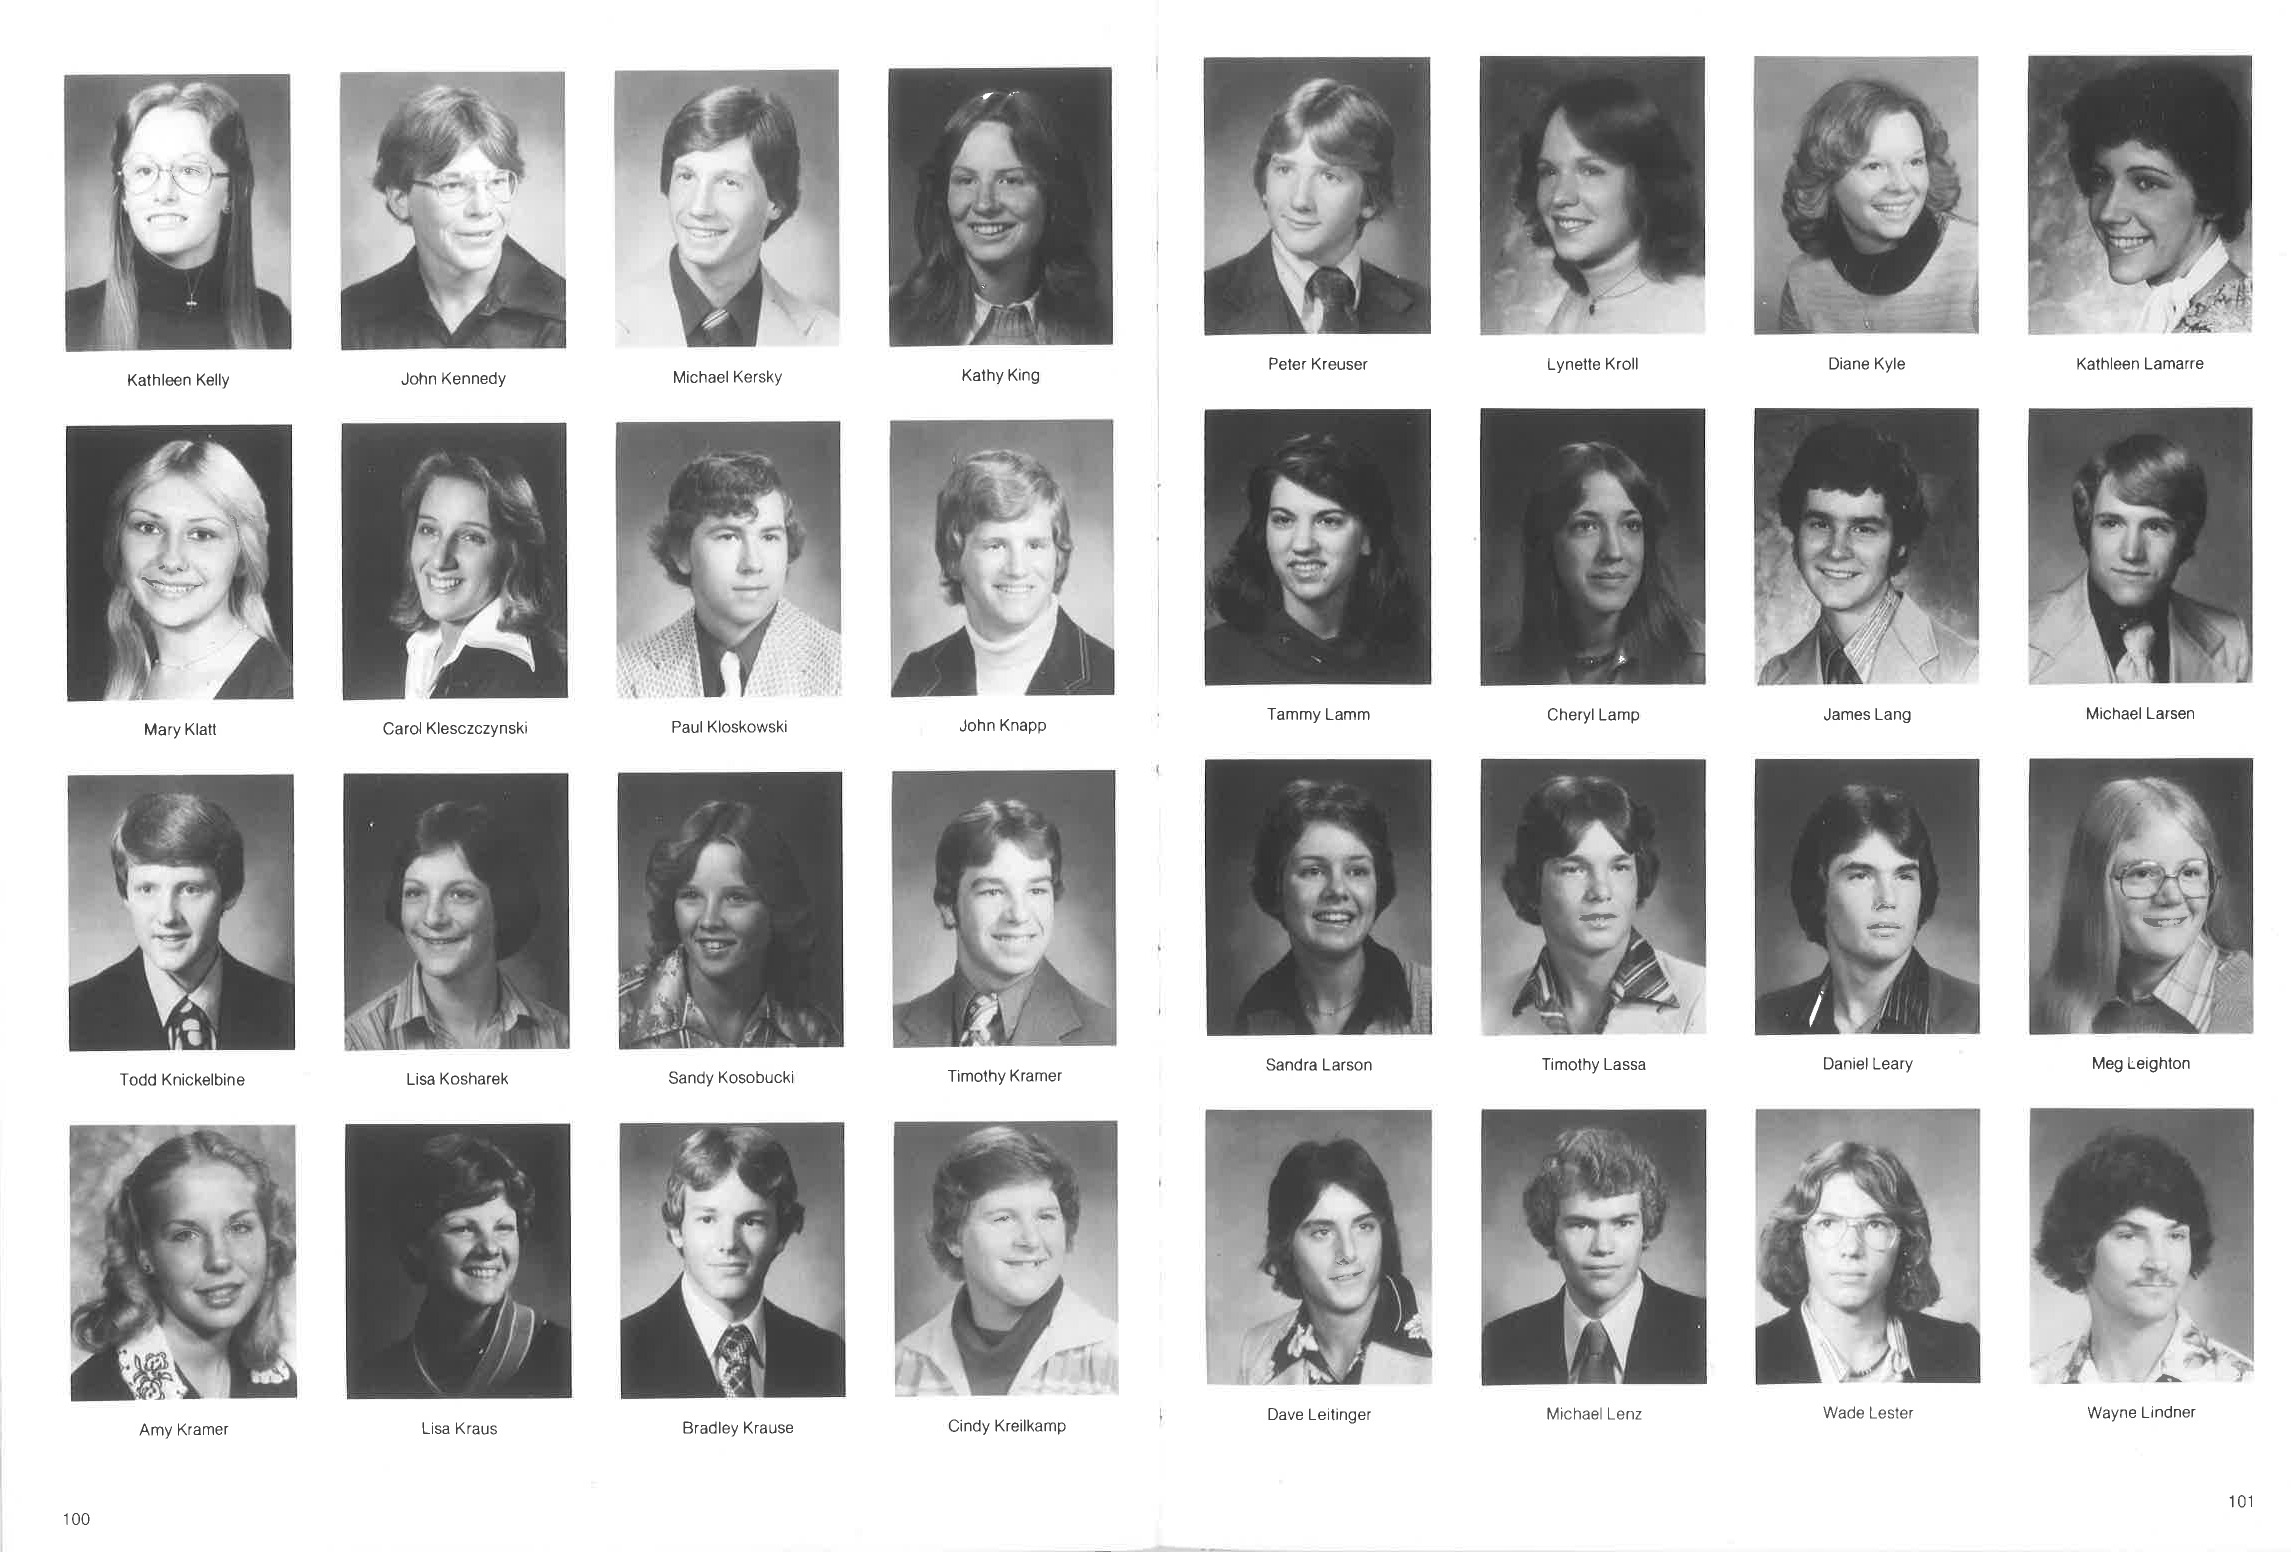 1979_Yearbook_100.jpg